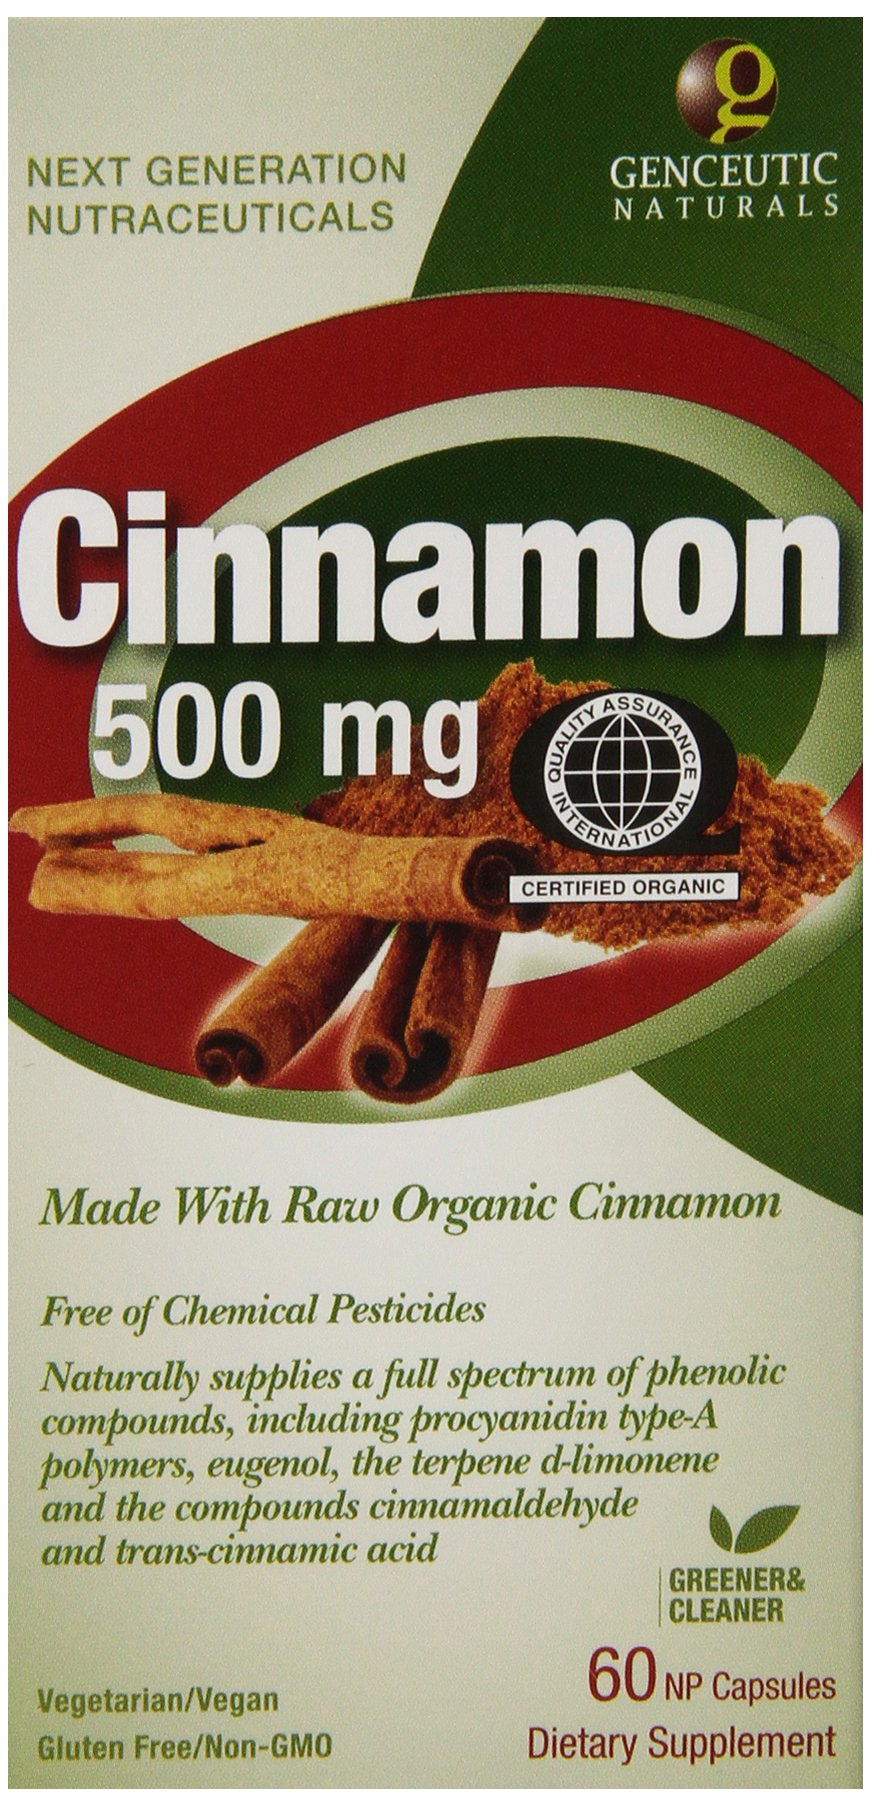 Genceutic Naturals Certified Dietary Supplement, Organic Cinnamon, 500 mg, 60 Count (Pack of 12)